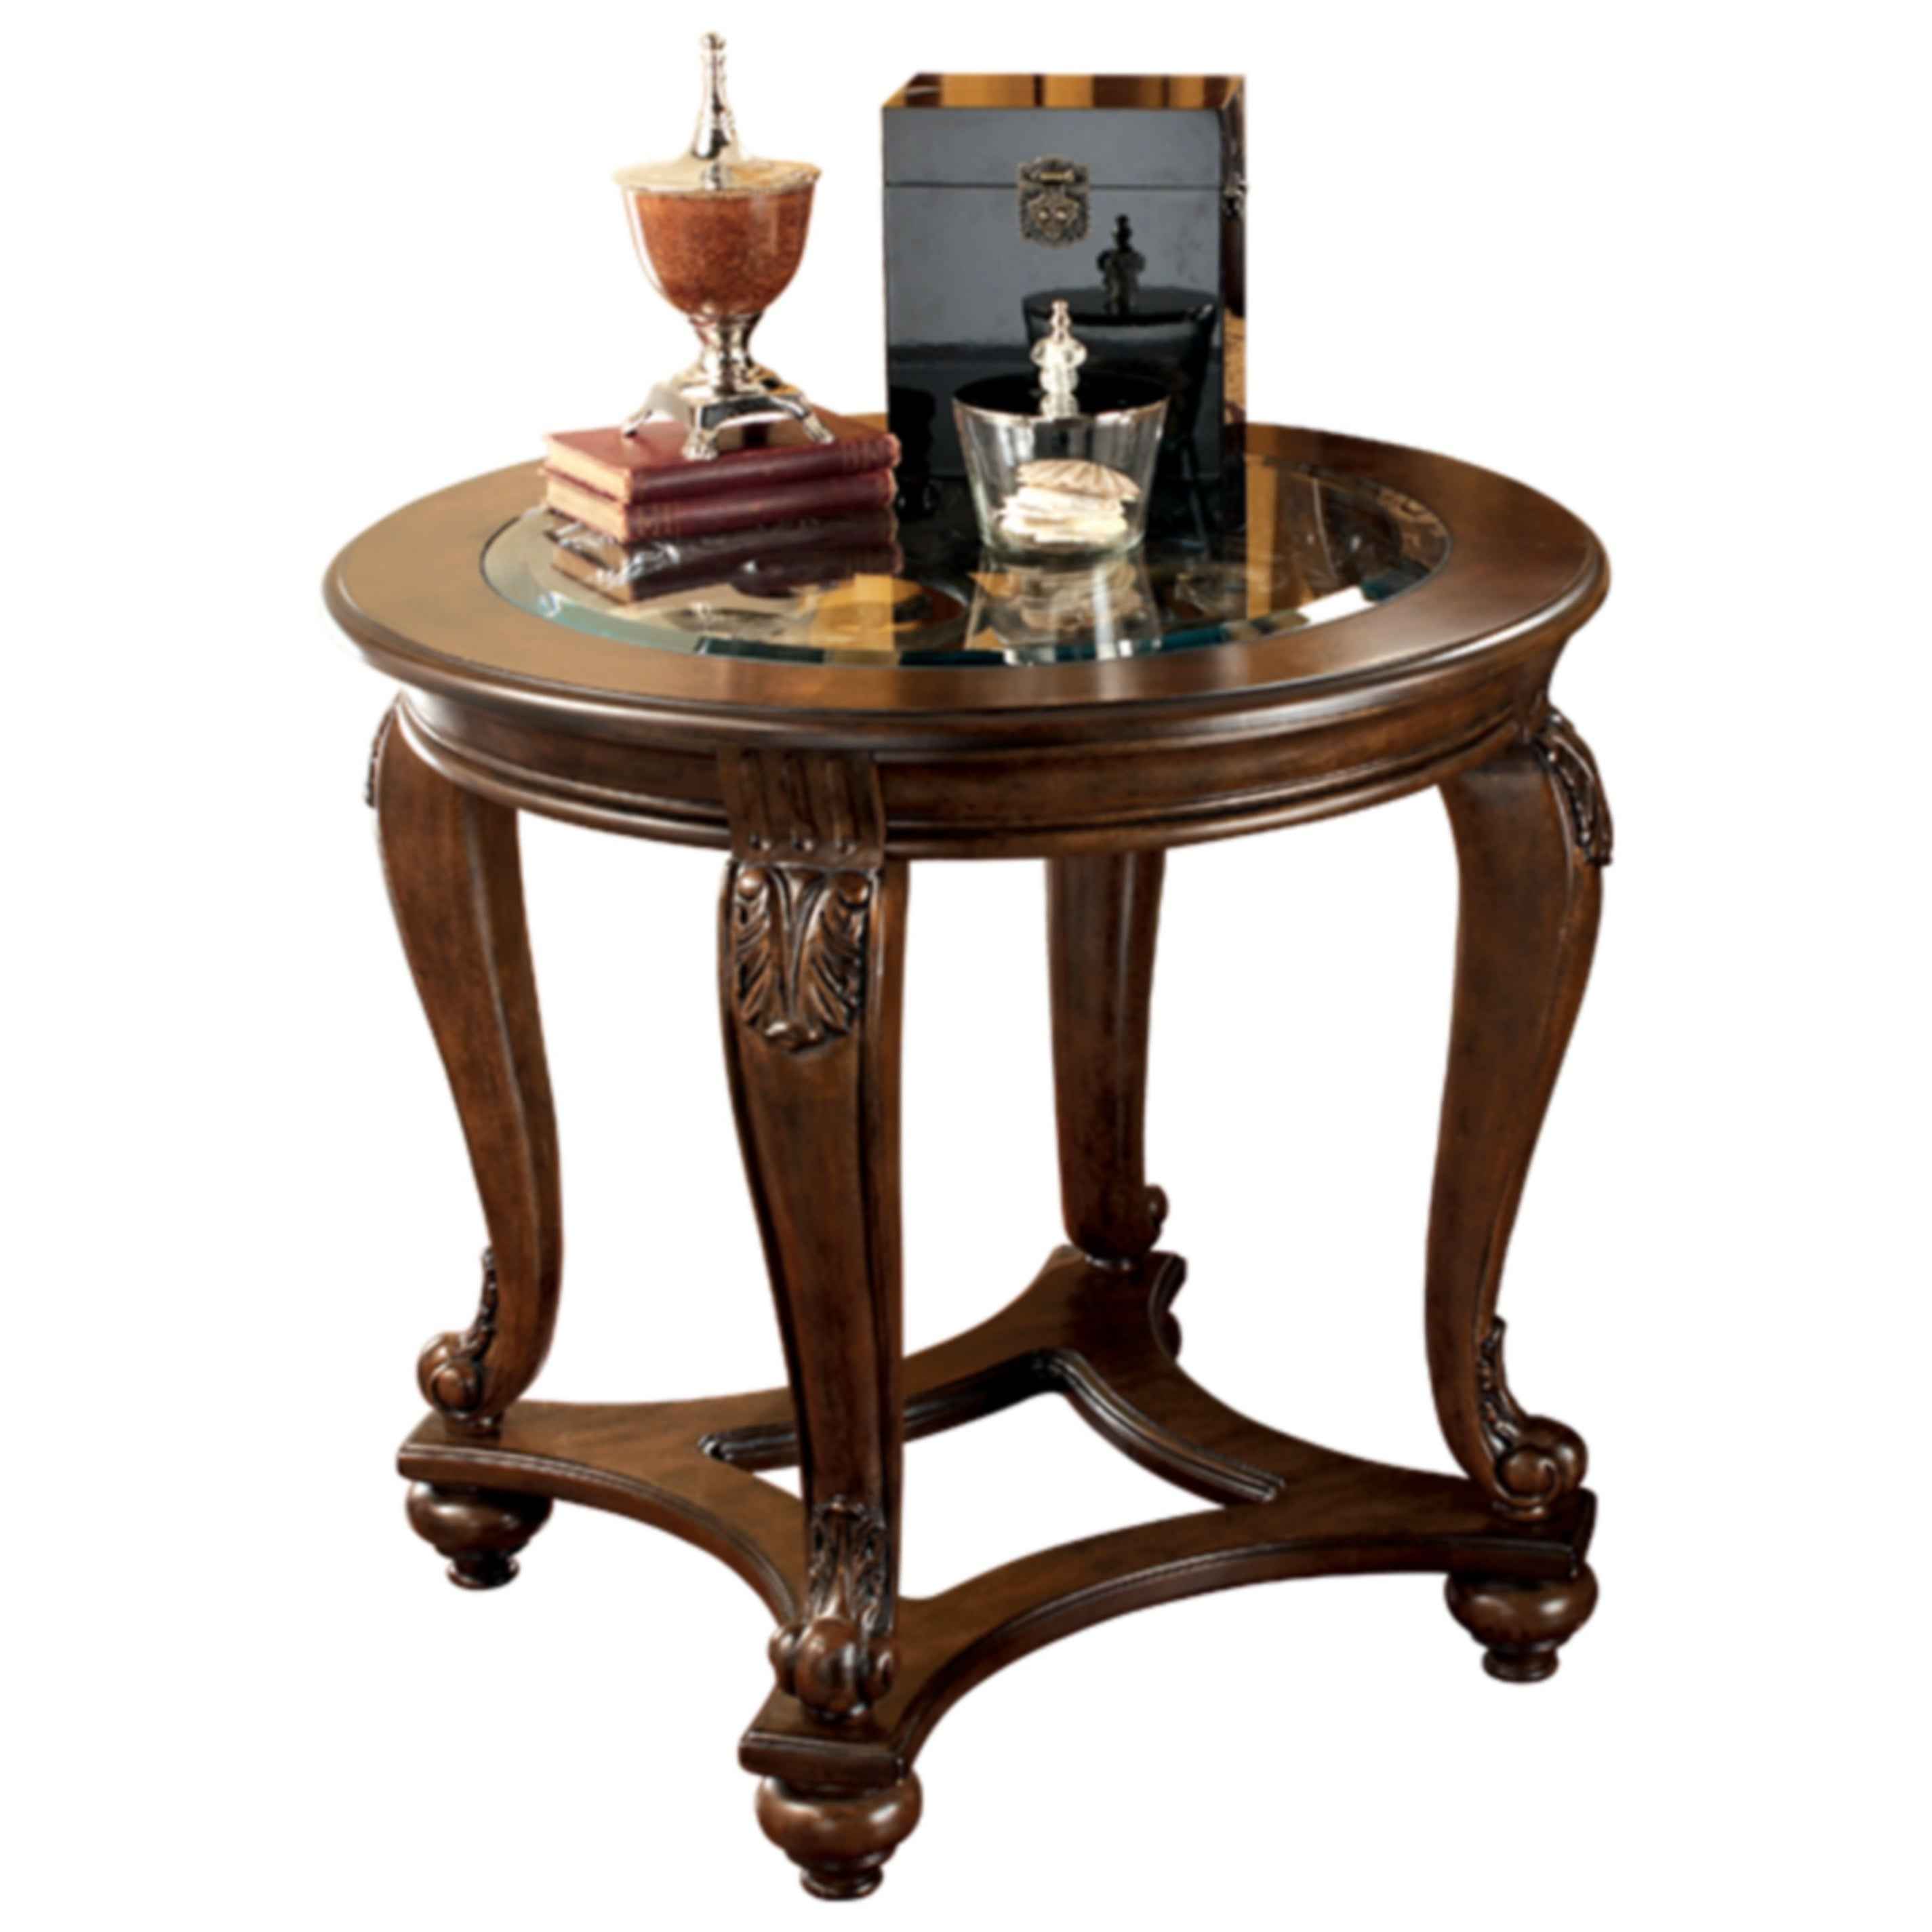 signature design ashley norcastle dark brown round end table tables outdoor furniture patio side used office bath glass set top square gold coffee girls bedroom strata twist